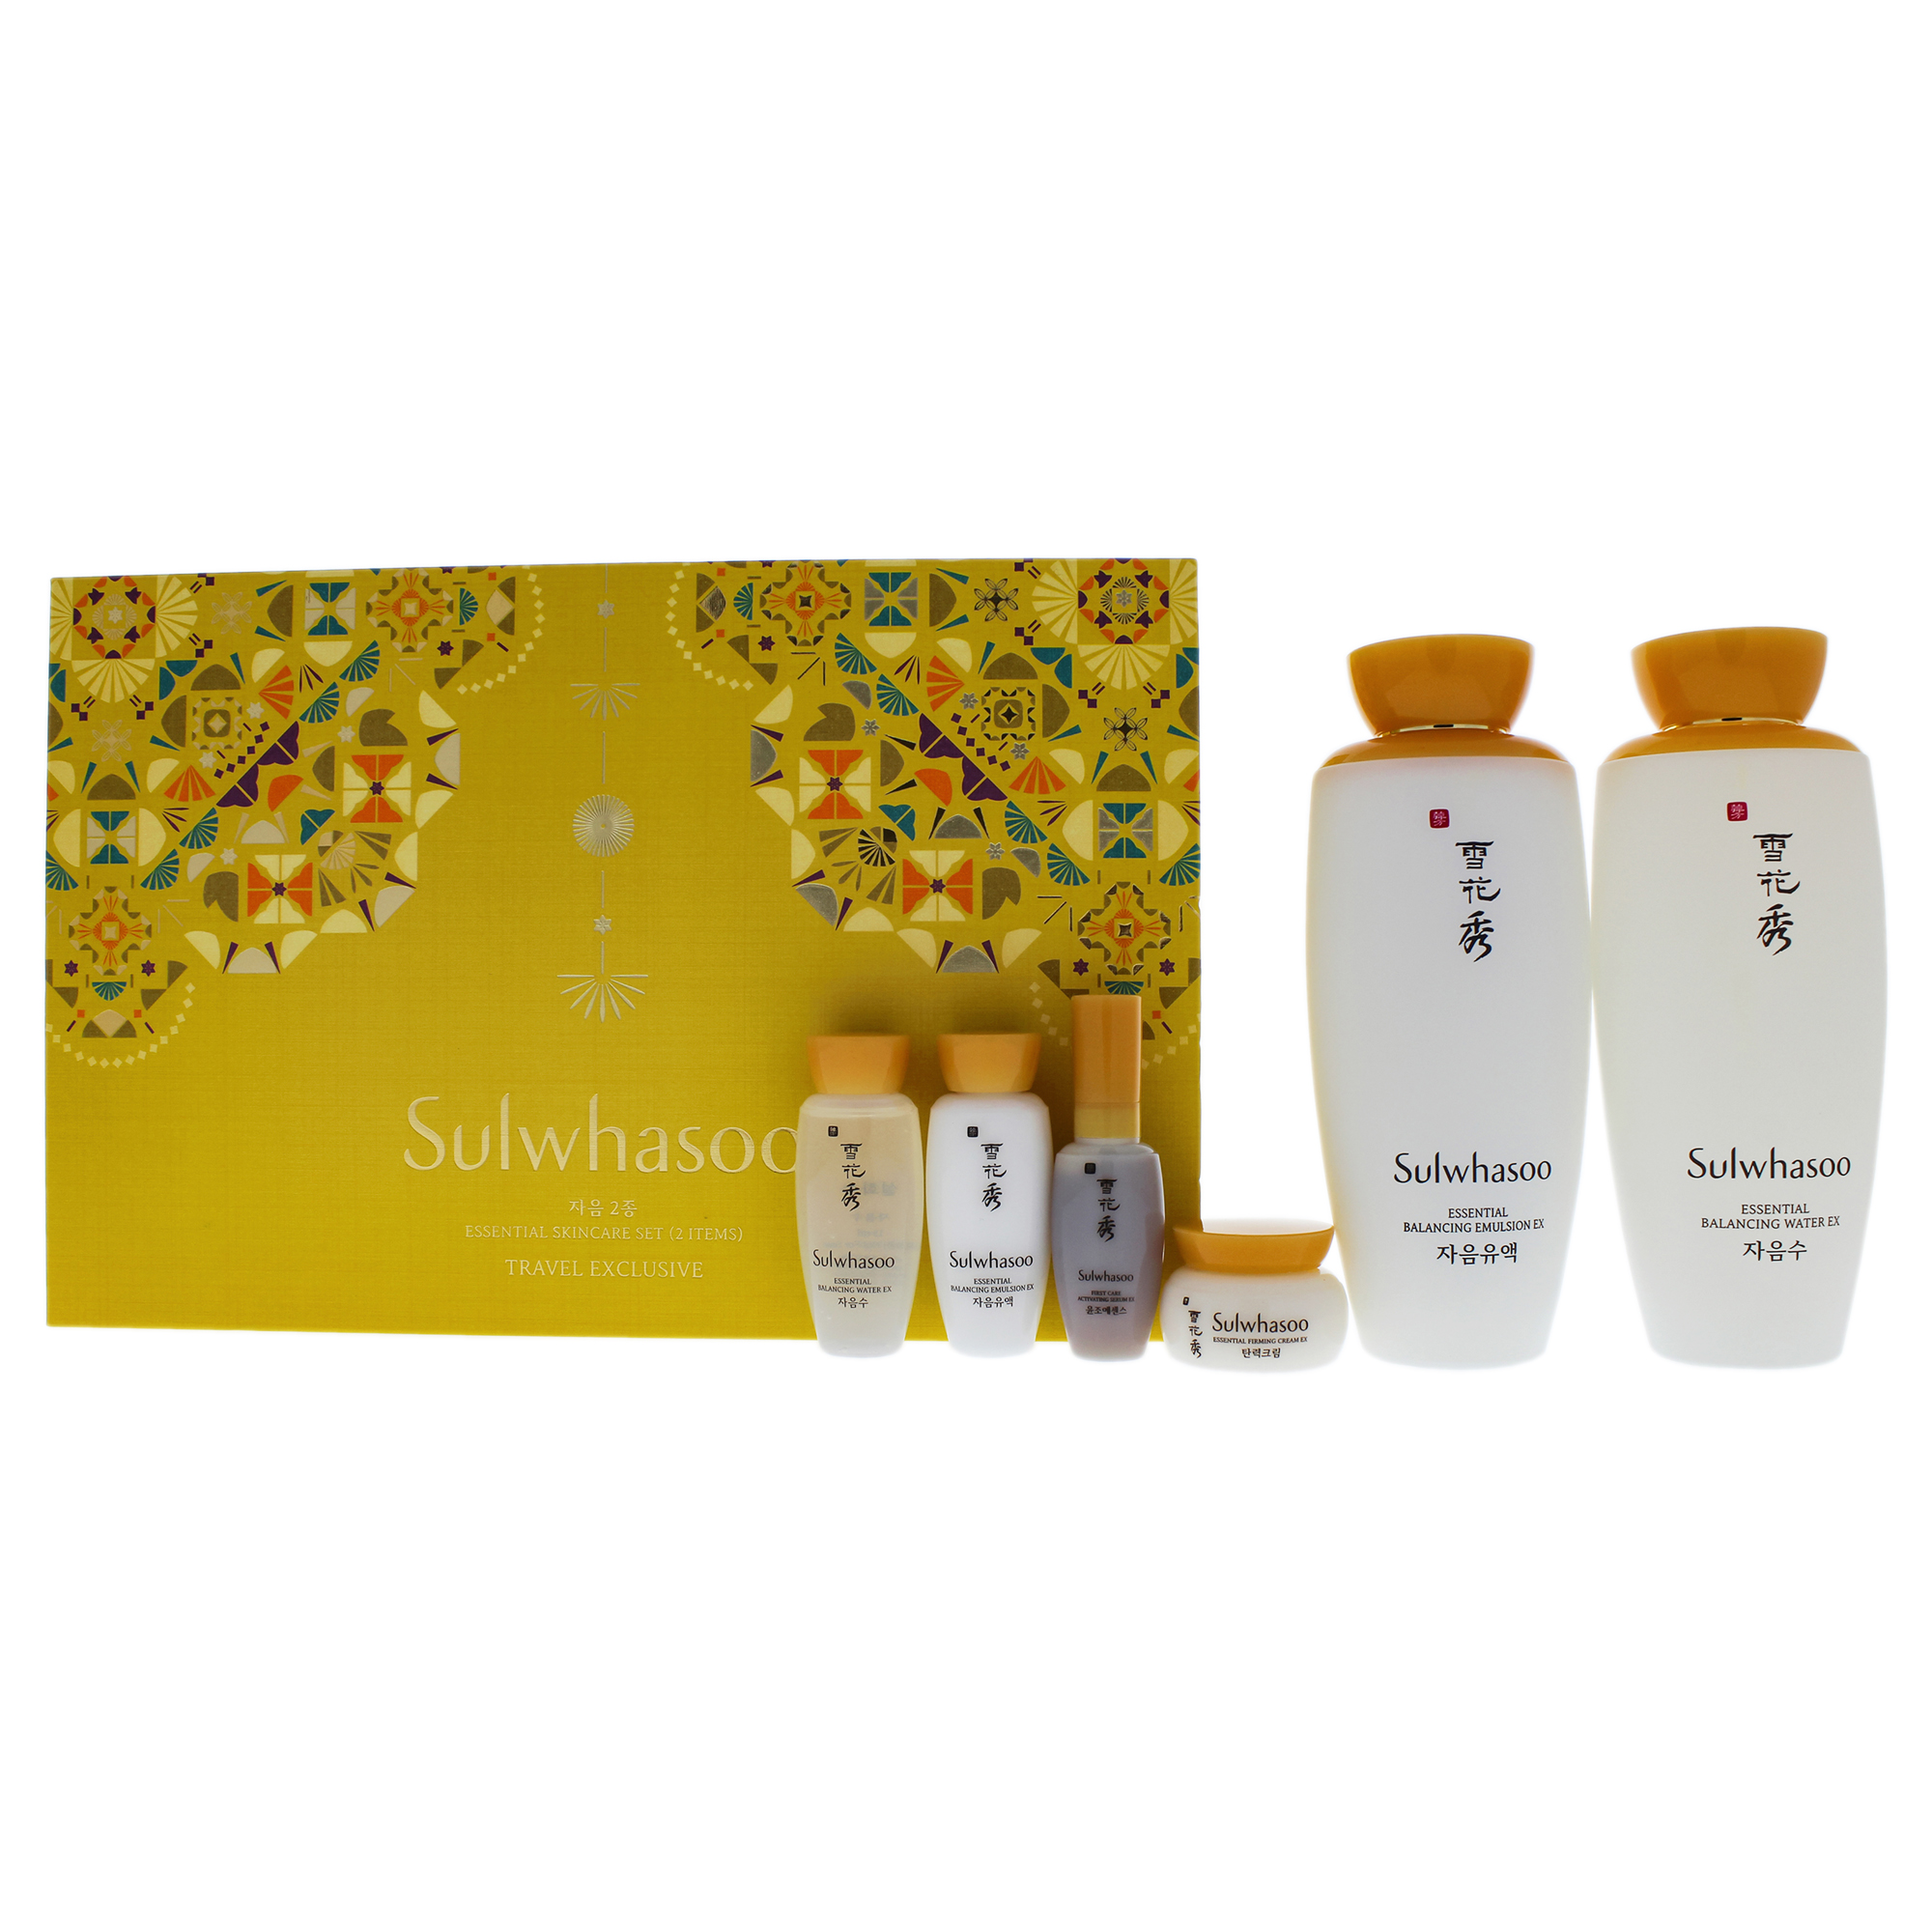 Sulwhasoo Travel Exclusive Essential Skincare Set (6 items)